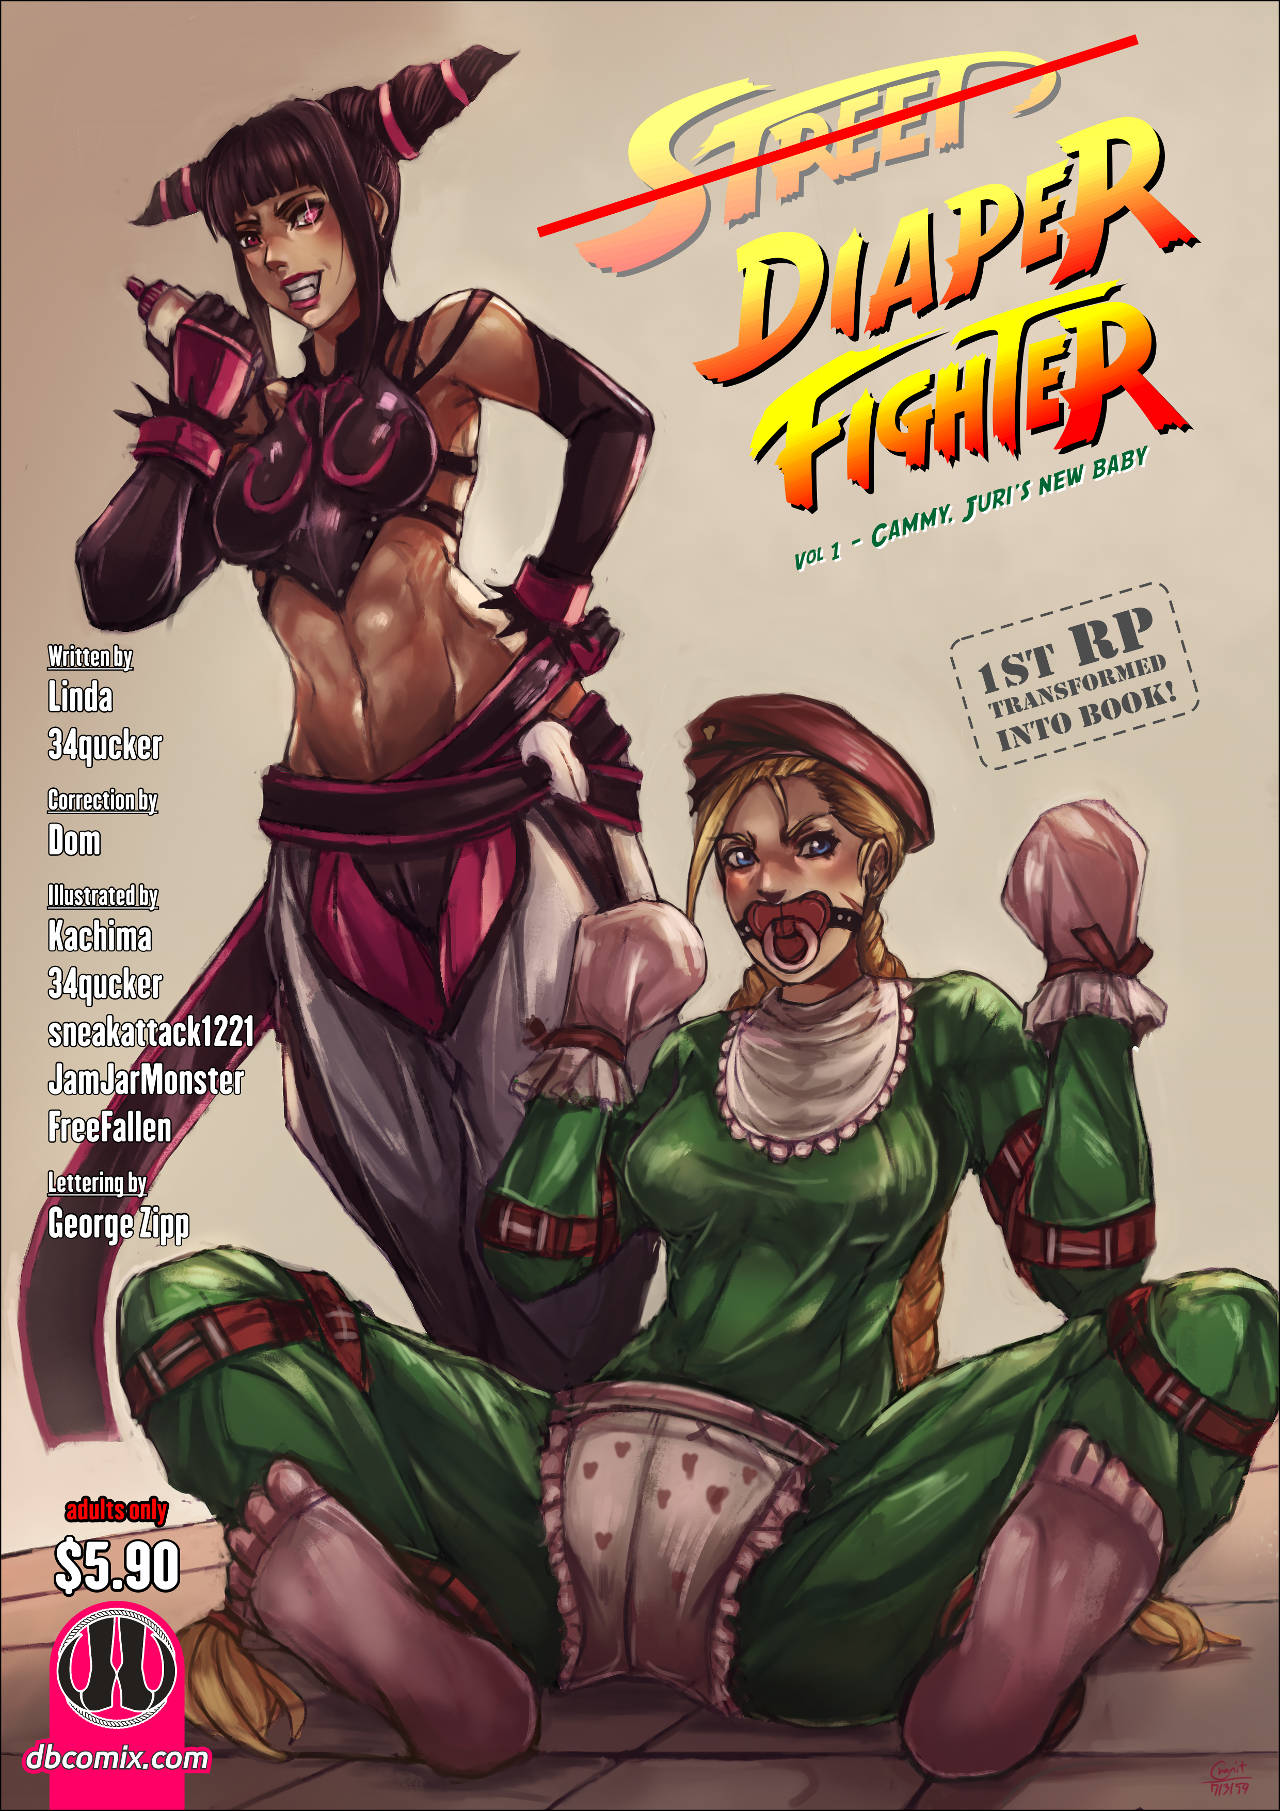 Street fighter Cammy White captured and humiliated by Juri Han. She is transformed into adult baby diaper slave